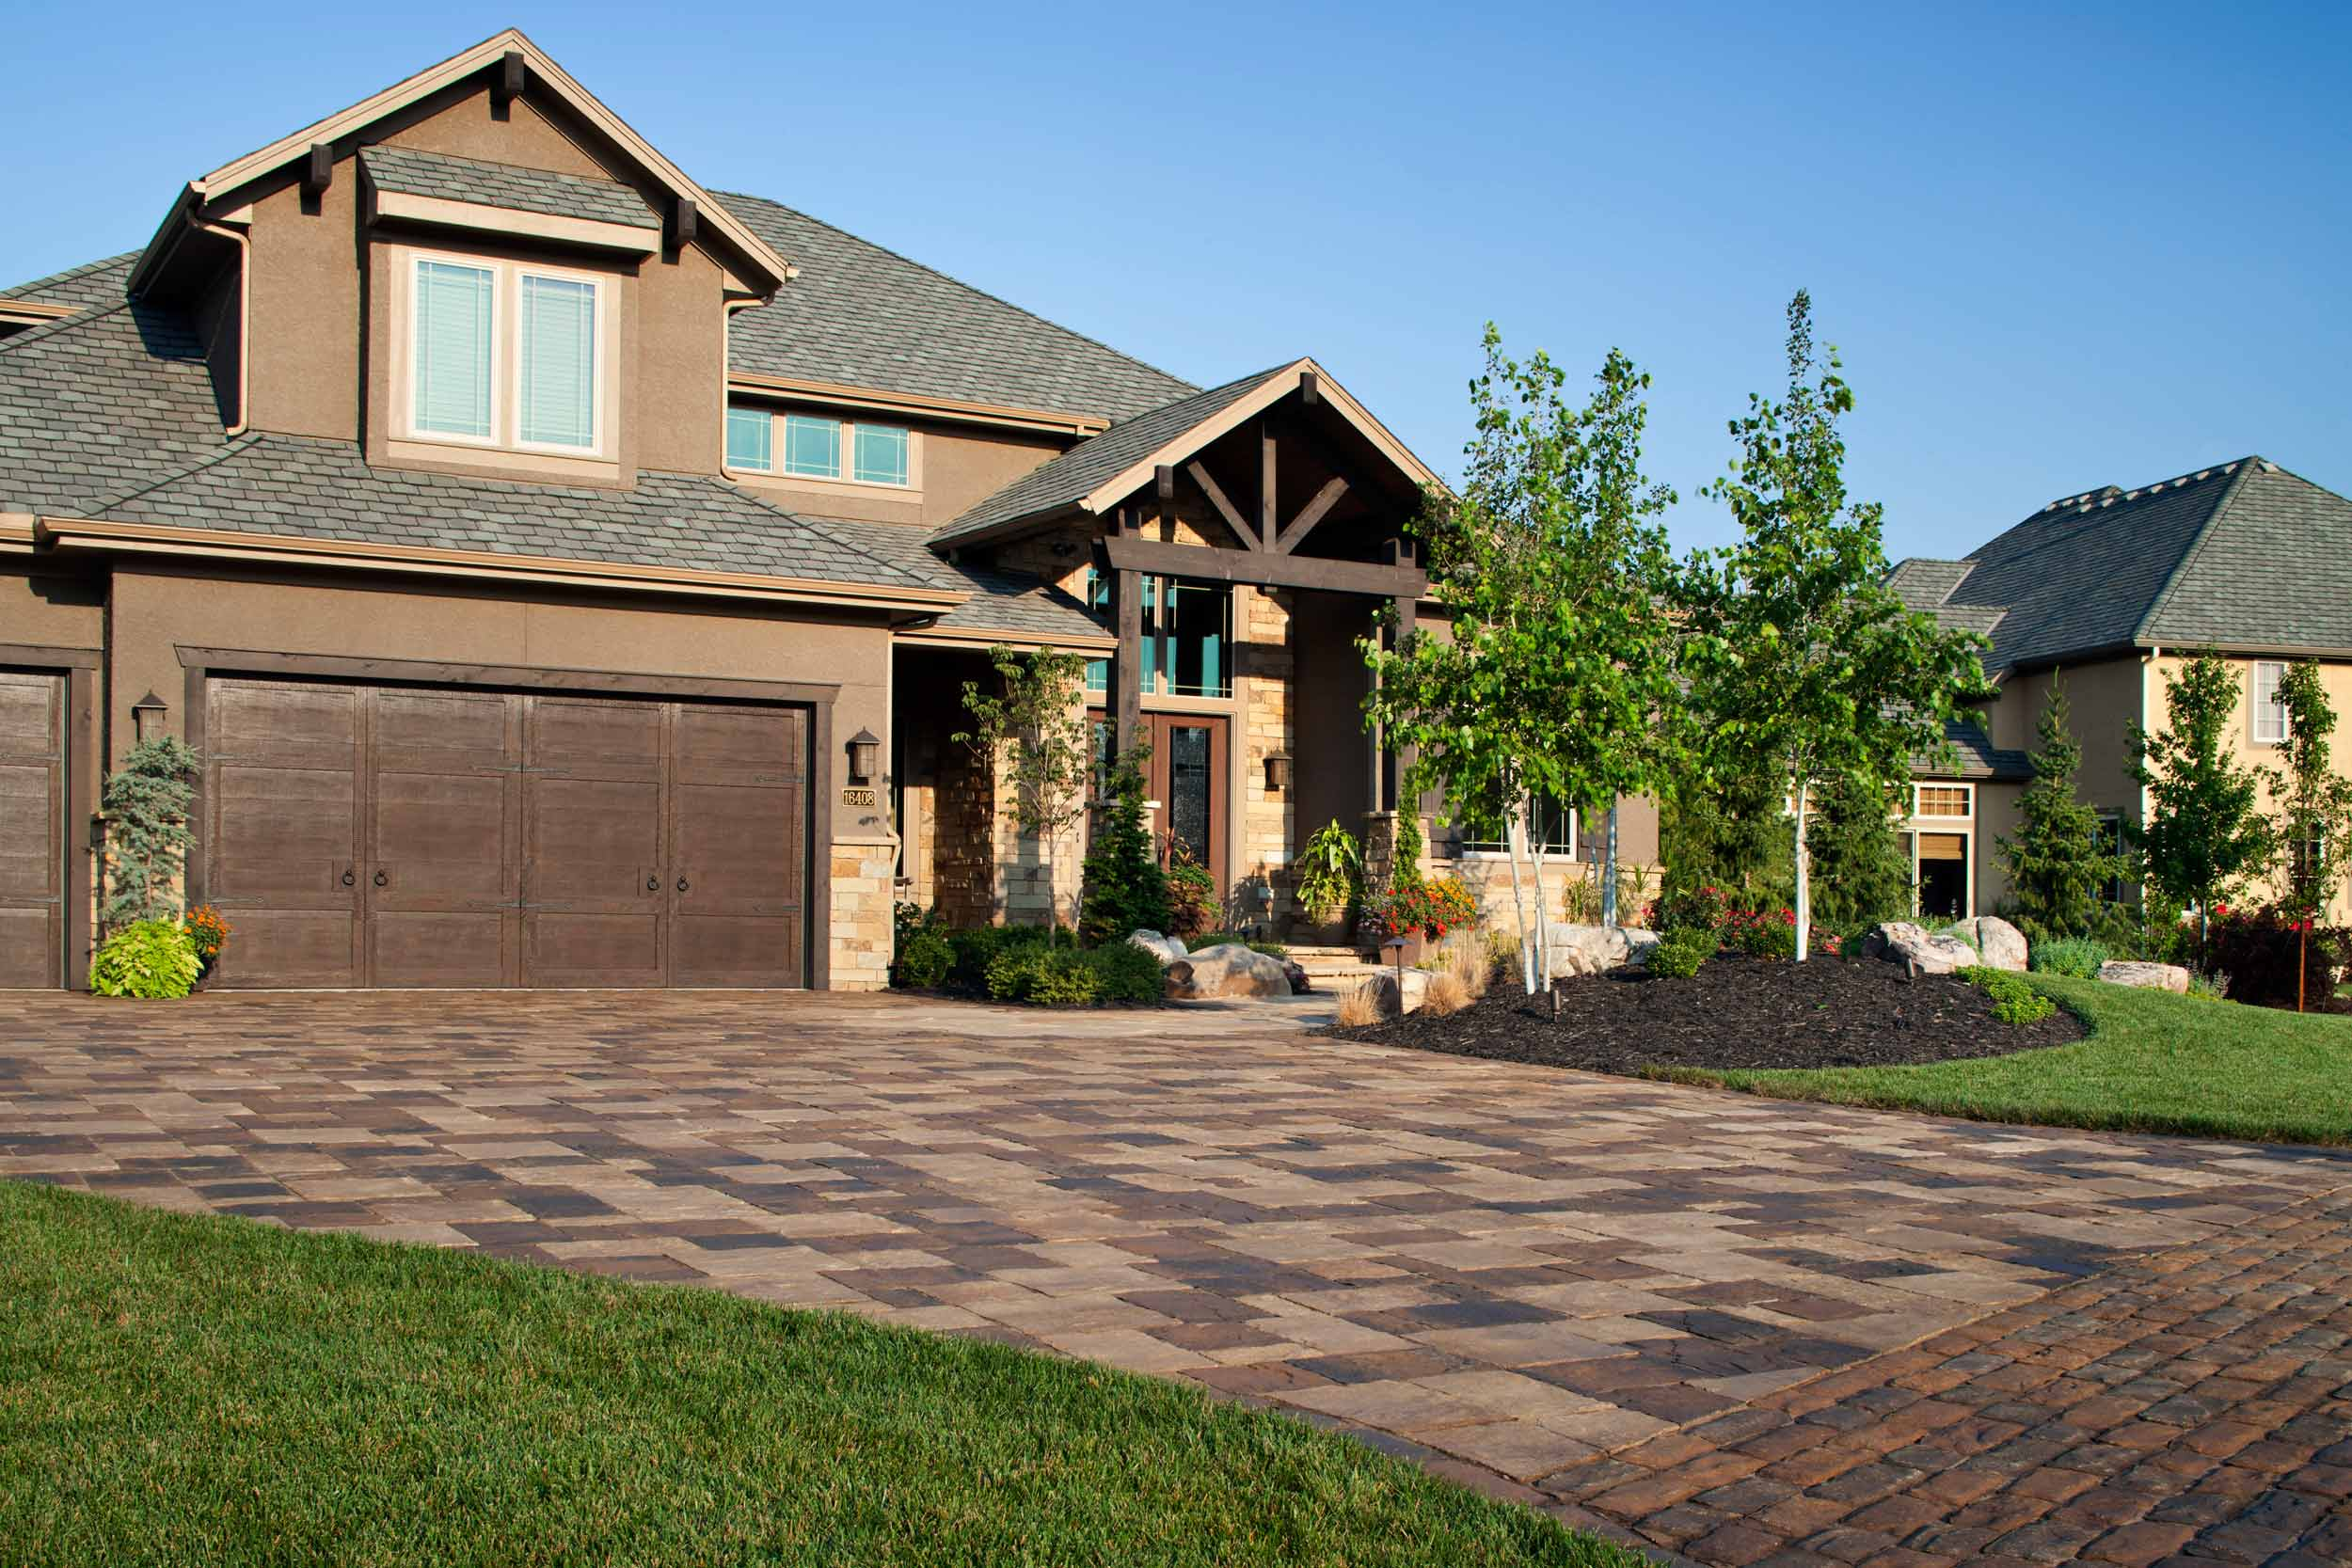 Driveway Pavers Installed in Alameda County, California